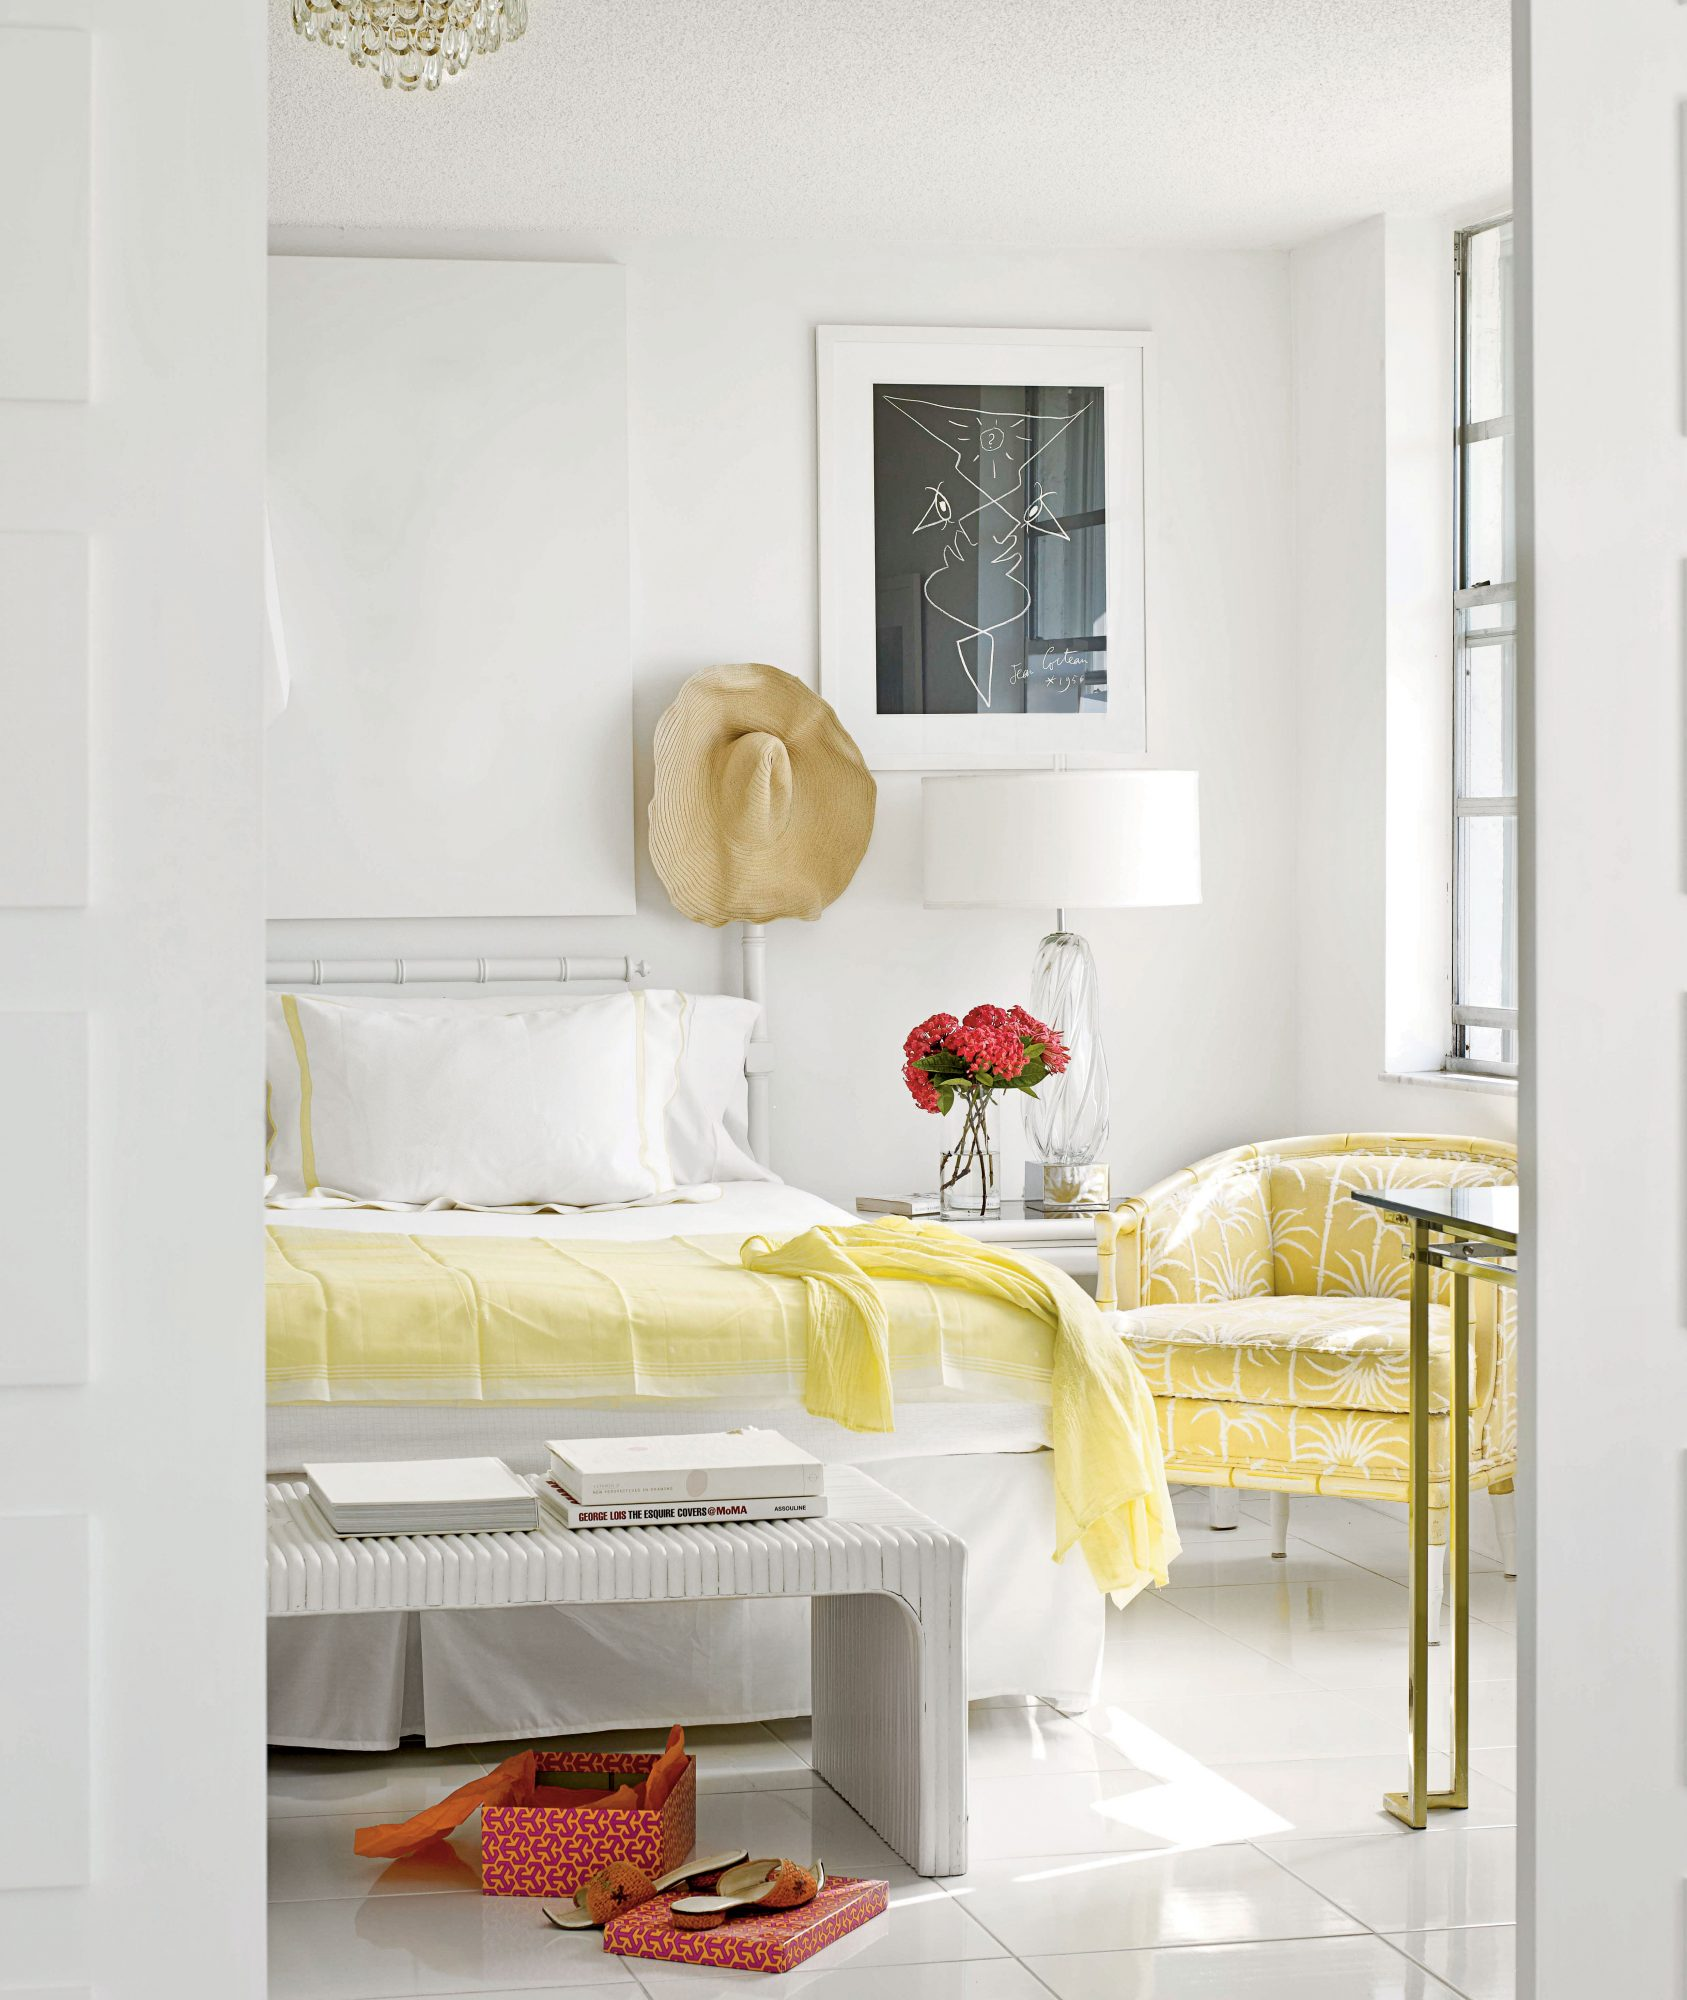 A vintage glass lamp, palm-print chair, and a sunny-hued bed linen add a flirty feel to this all-white bedroom.